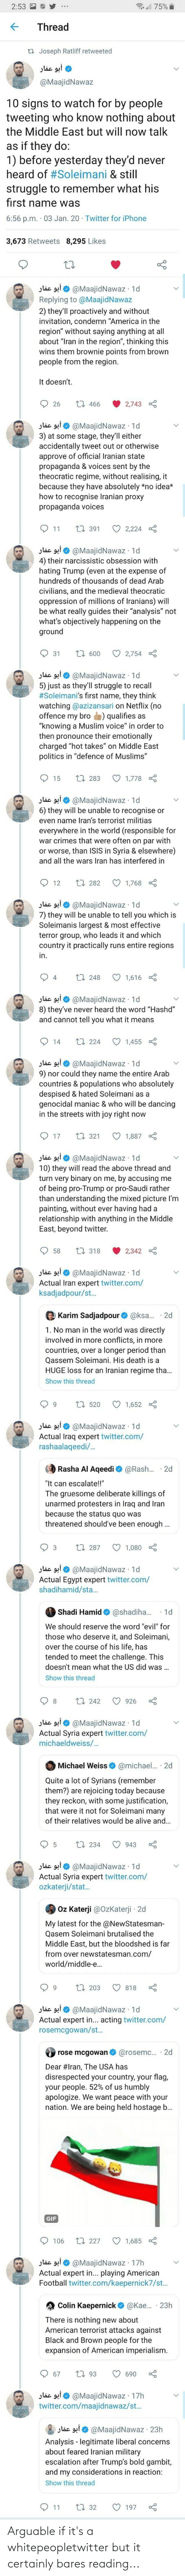 """iphone 3: ll 75%  2:53  Thread  ta Joseph Ratliff retweeted  أبو عمار  @MaajidNawaz  10 signs to watch for by people  tweeting who know nothing about  the Middle East but will now talk  as if they do:  1) before yesterday they'd never  heard of #Soleimani & still  struggle to remember what his  fırst name was  6:56 p.m. · 03 Jan. 20 Twitter for iPhone  3,673 Retweets 8,295 Likes  jlác sại 0 @MaajidNawaz · 1d  Replying to @MaajidNawaz  2) they'll proactively and without  invitation, condemn """"America in the  region"""" without saying anything at all  about """"Iran in the region"""", thinking this  wins them brownie points from brown  people from the region.  It doesn't.  17 466  26  2,743  Jlác 9i O @MaajidNawaz · 1d  3) at some stage, they'll either  accidentally tweet out or otherwise  approve of official Iranian state  propaganda & voices sent by the  theocratic regime, without realising, it  because they have absolutely *no idea*  how to recognise Iranian proxy  propaganda voices  17 391  2,224  11  jlác 9iO @MaajidNawaz · 1d  4) their narcissistic obsession with  hating Trump (even at the expense of  hundreds of thousands of dead Arab  civilians, and the medieval theocratic  oppression of millions of Iranians) will  be what really guides their """"analysis"""" not  what's objectively happening on the  ground  17 600  31  2,754  jlác 910 @MaajidNawaz · 1d  5) just as they'll struggle to recall  #Soleimani's first name, they think  watching @azizansari on Netflix (no  offence my bro  """"knowing a Muslim voice"""" in order to  then pronounce their emotionally  charged """"hot takes"""" on Middle East  politics in """"defence of Muslims""""  qualifies as  t7 283  15  1,778  @MaajidNawaz · 1d  6) they will be unable to recognise or  أبو عمار  even name Iran's terrorist militias  everywhere in the world (responsible for  war crimes that were often on par with  or worse, than ISIS in Syria & elsewhere)  and all the wars Iran has interfered in  O 1,768  27 282  12  slác gi0 @MaajidNawaz · 1d  7) they """